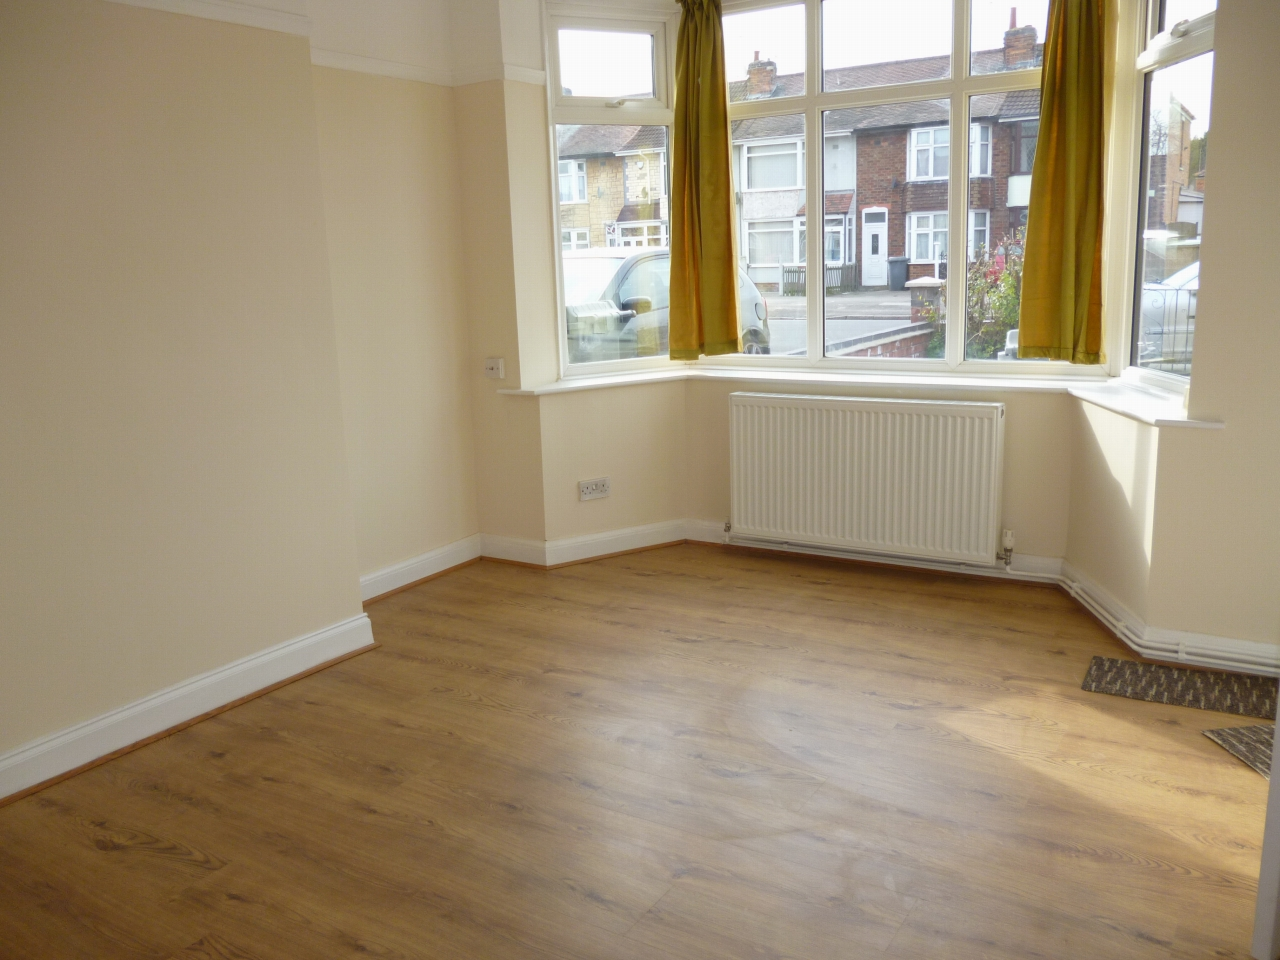 3 bedroom mid terraced house To Let in Leicester - Photograph 3.